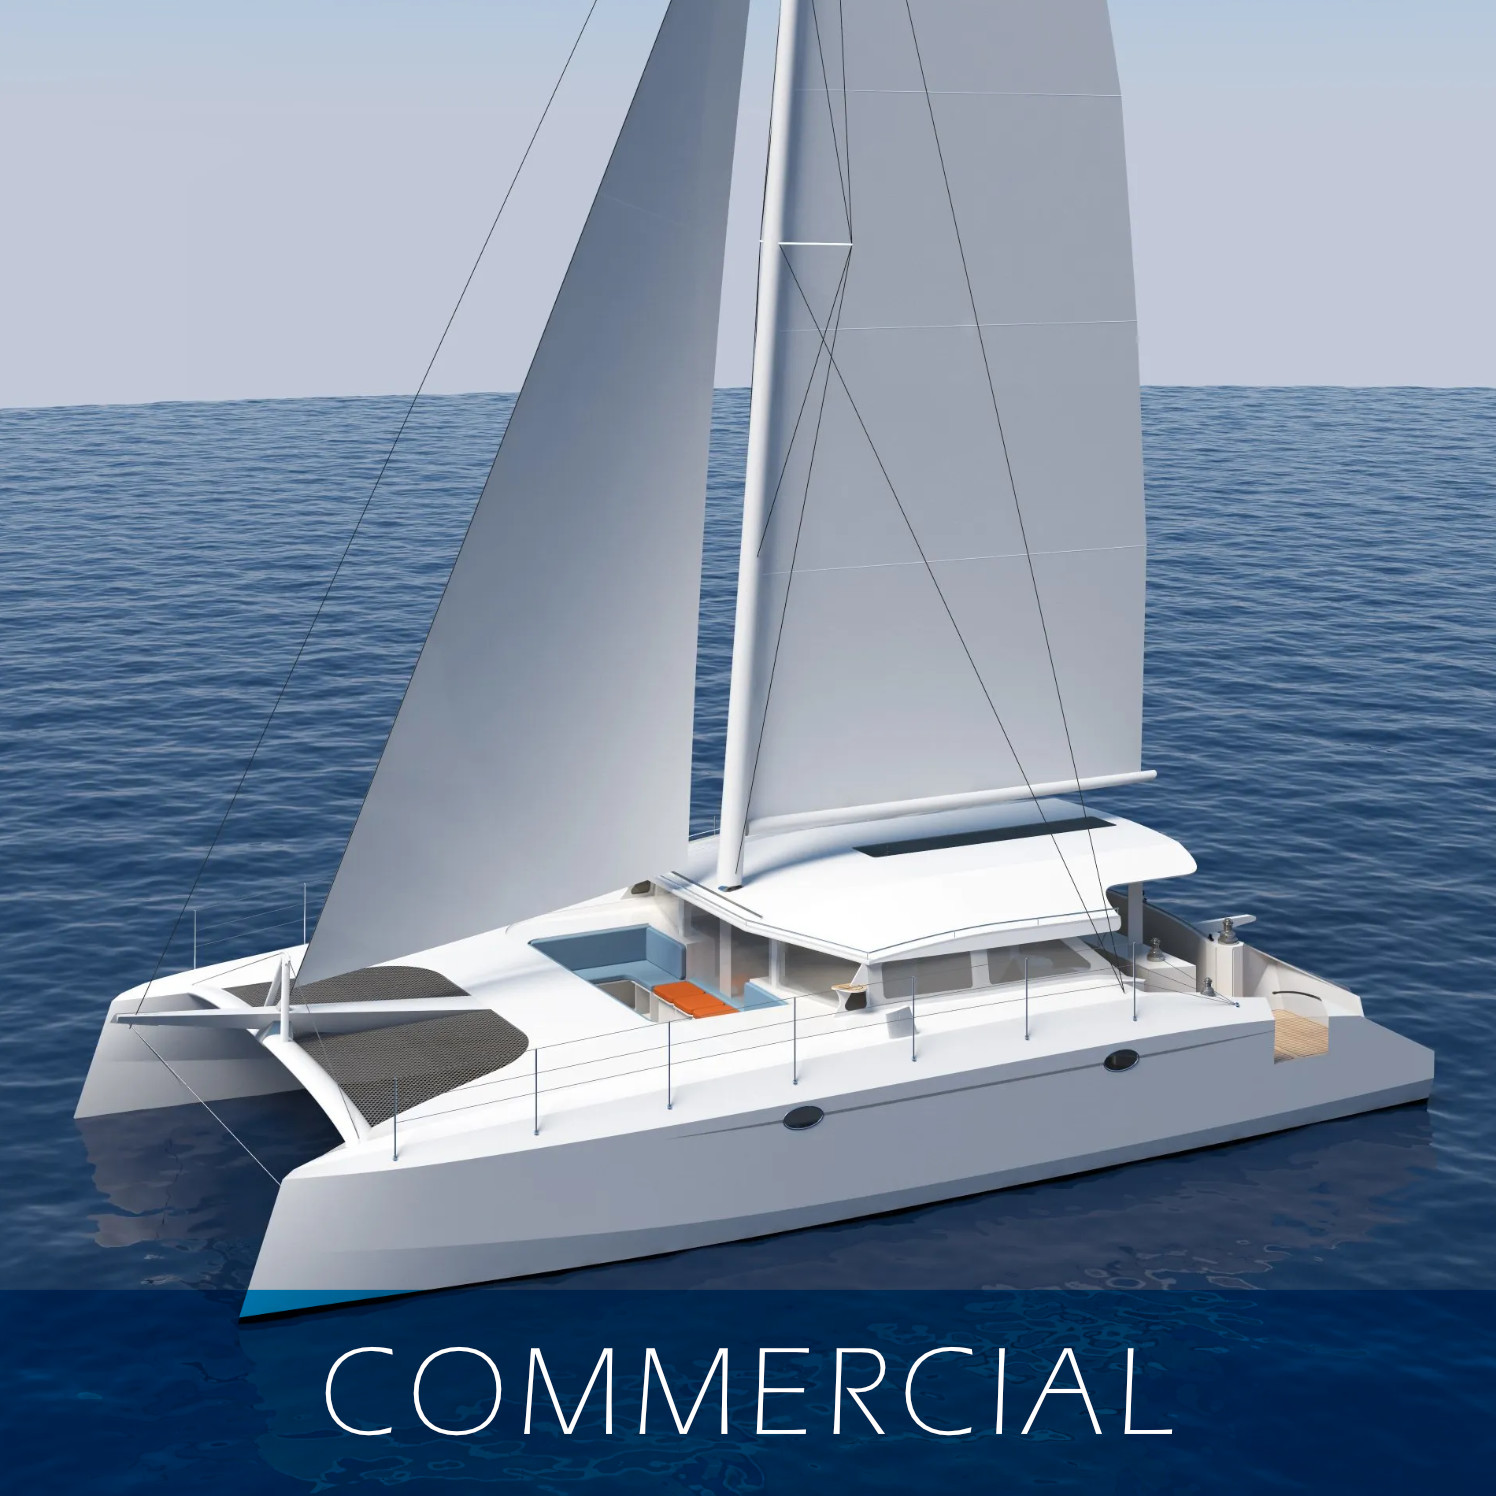 Commercial Catamaran Designs - SDI - Schionning Designs International